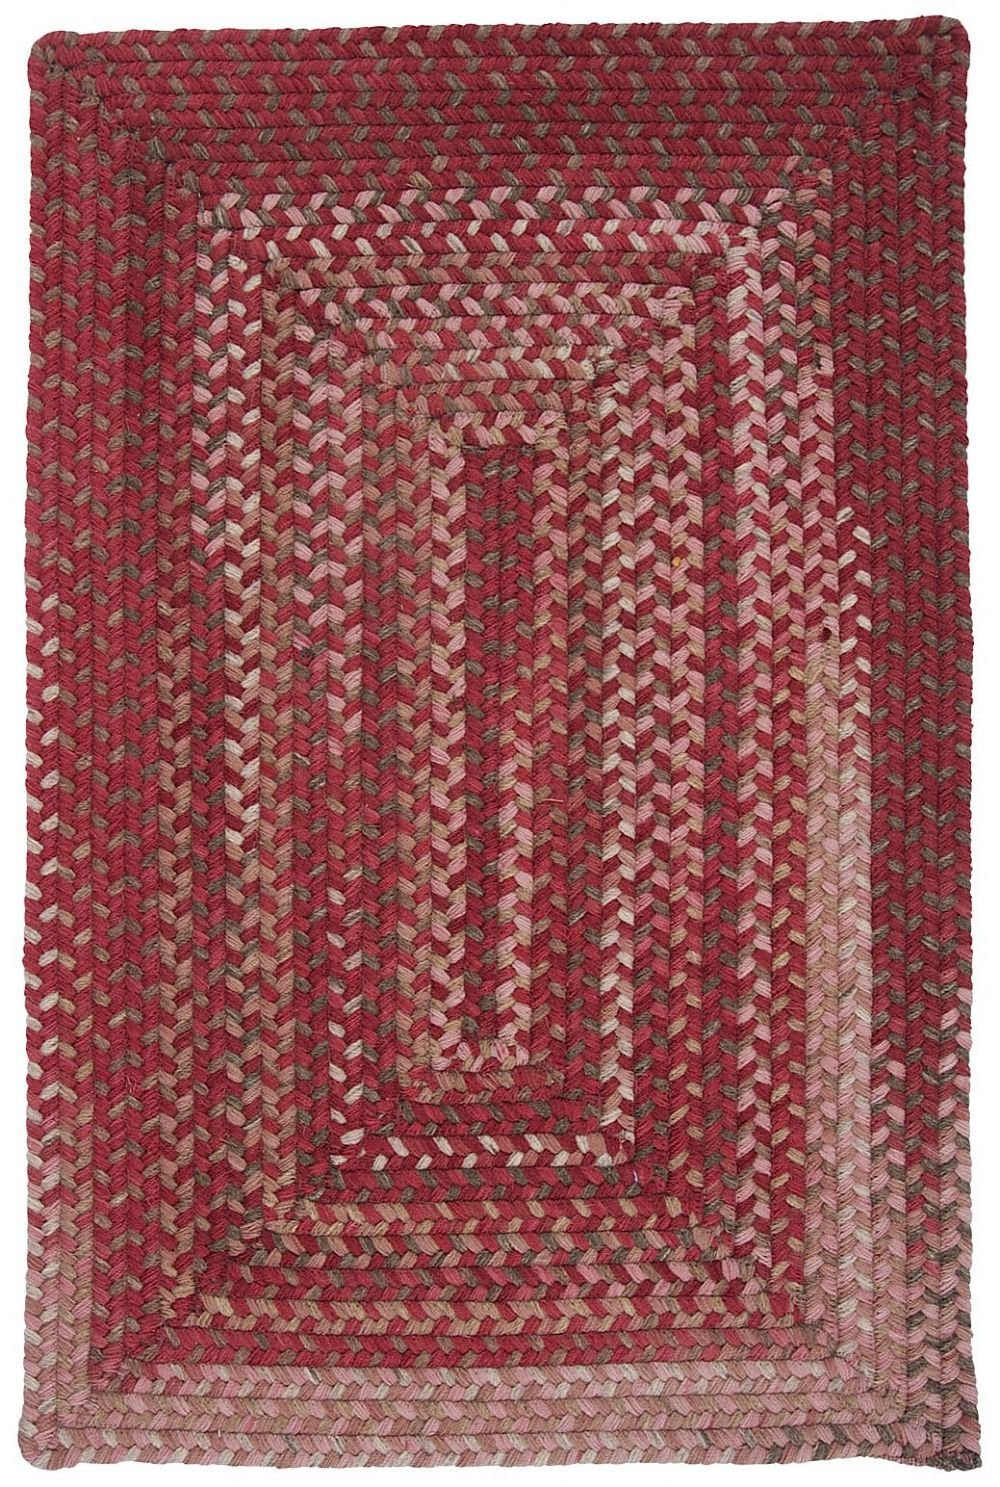 Colonial Mills Gloucester Red 4 x6 Braided Area Rug